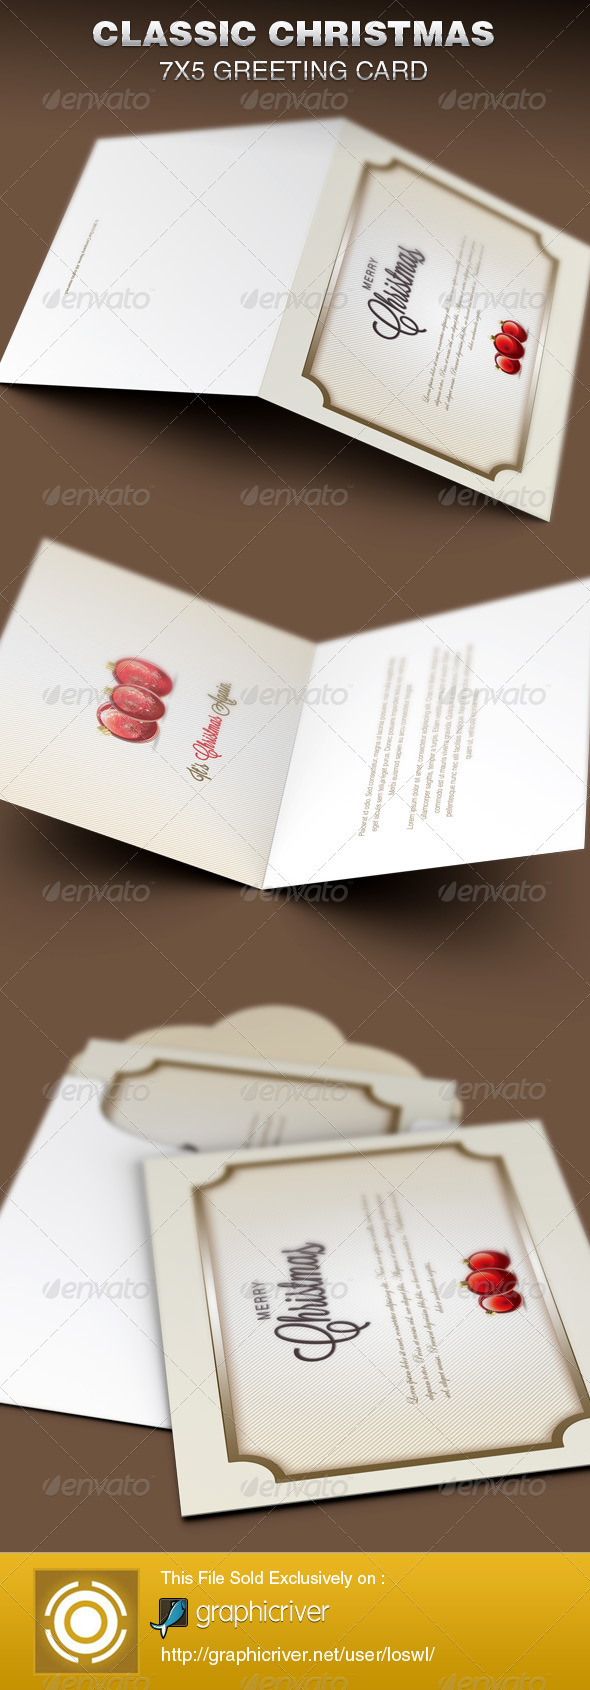 GraphicRiver Classic Christmas Greeting Card Template 6339091